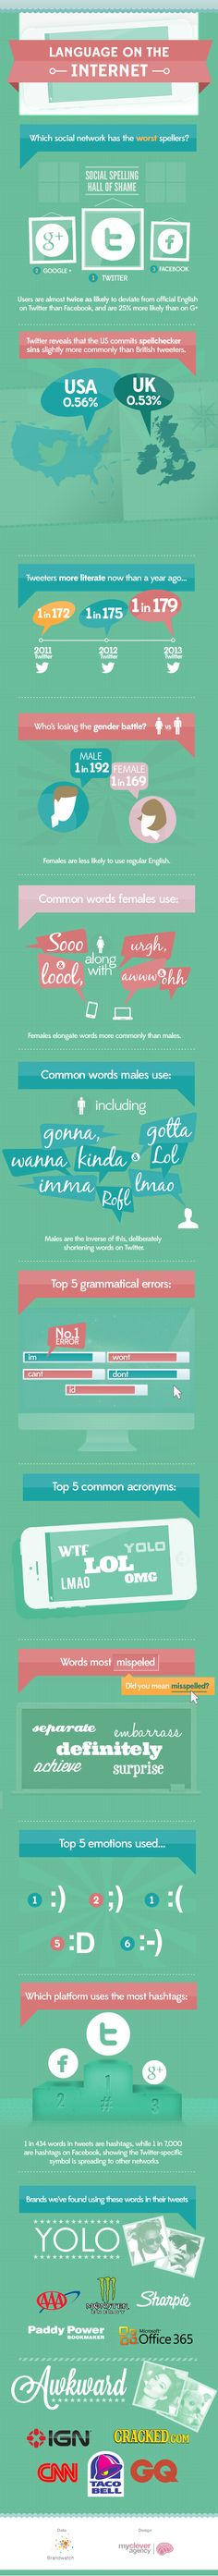 Research Shows Twitter is Driving English Language Evolution - Brandwatch